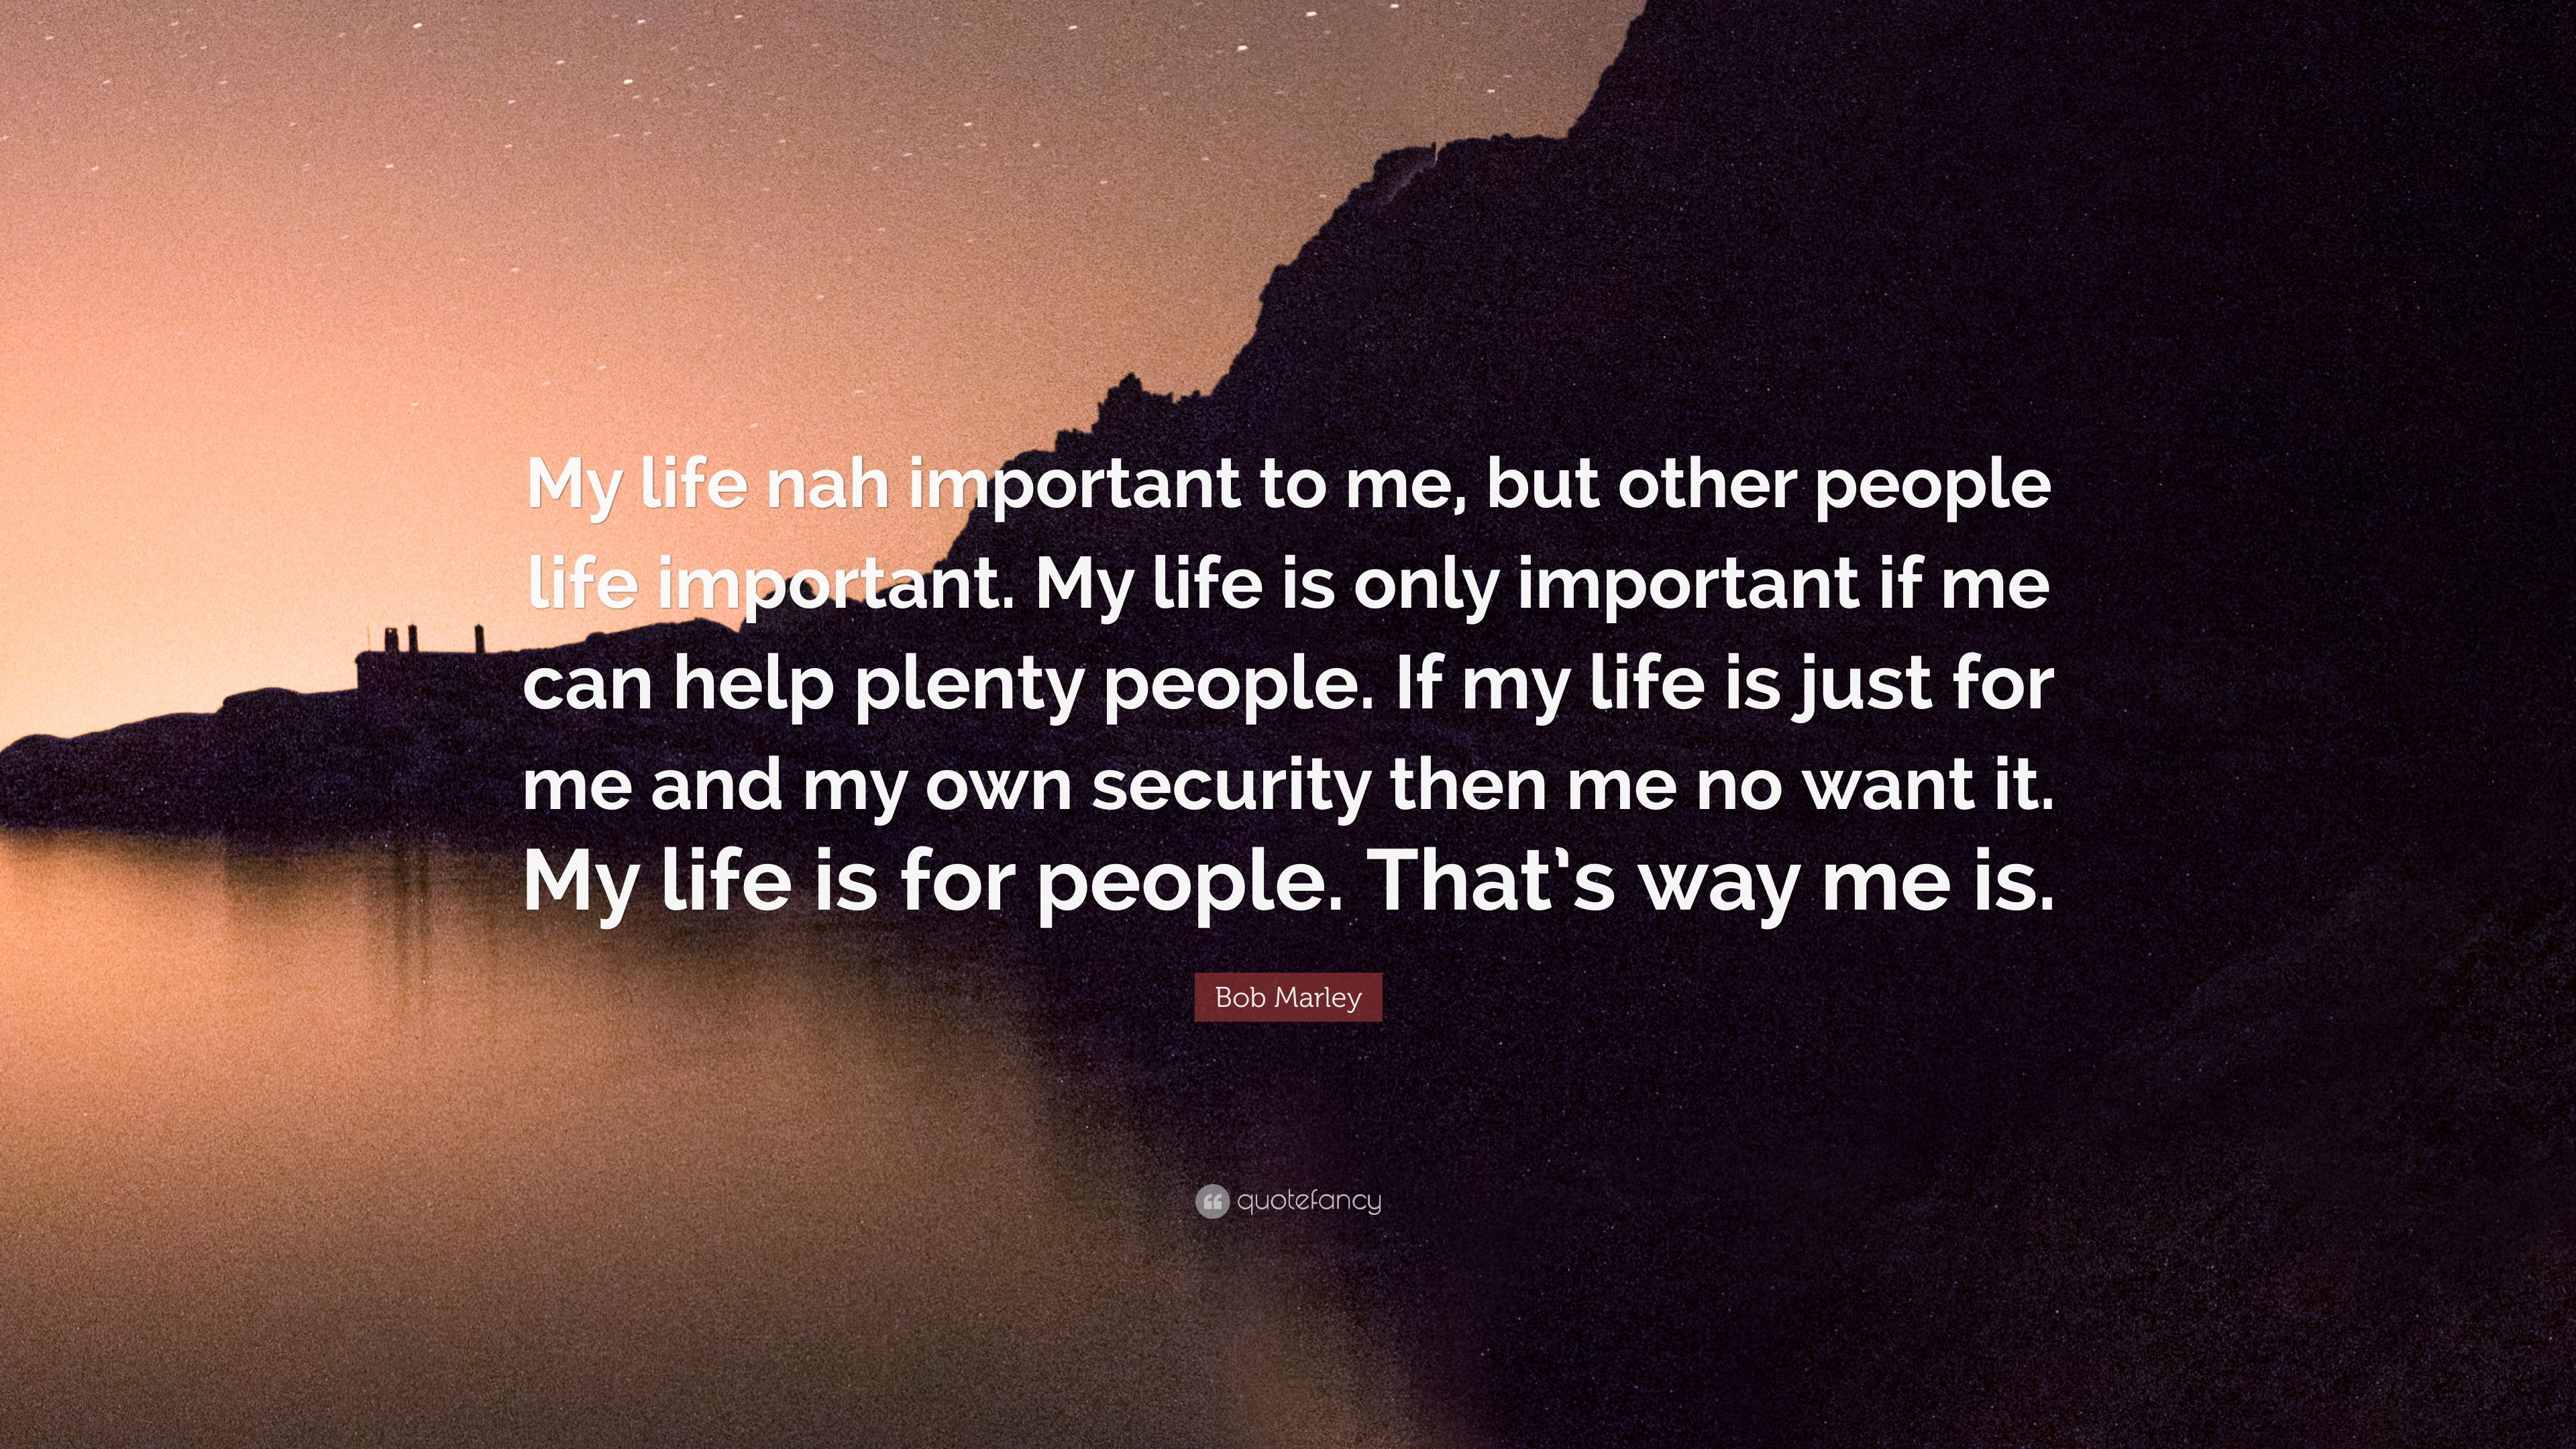 Bob Marley Quote My Life Nah Important To Me But Other People - But portant